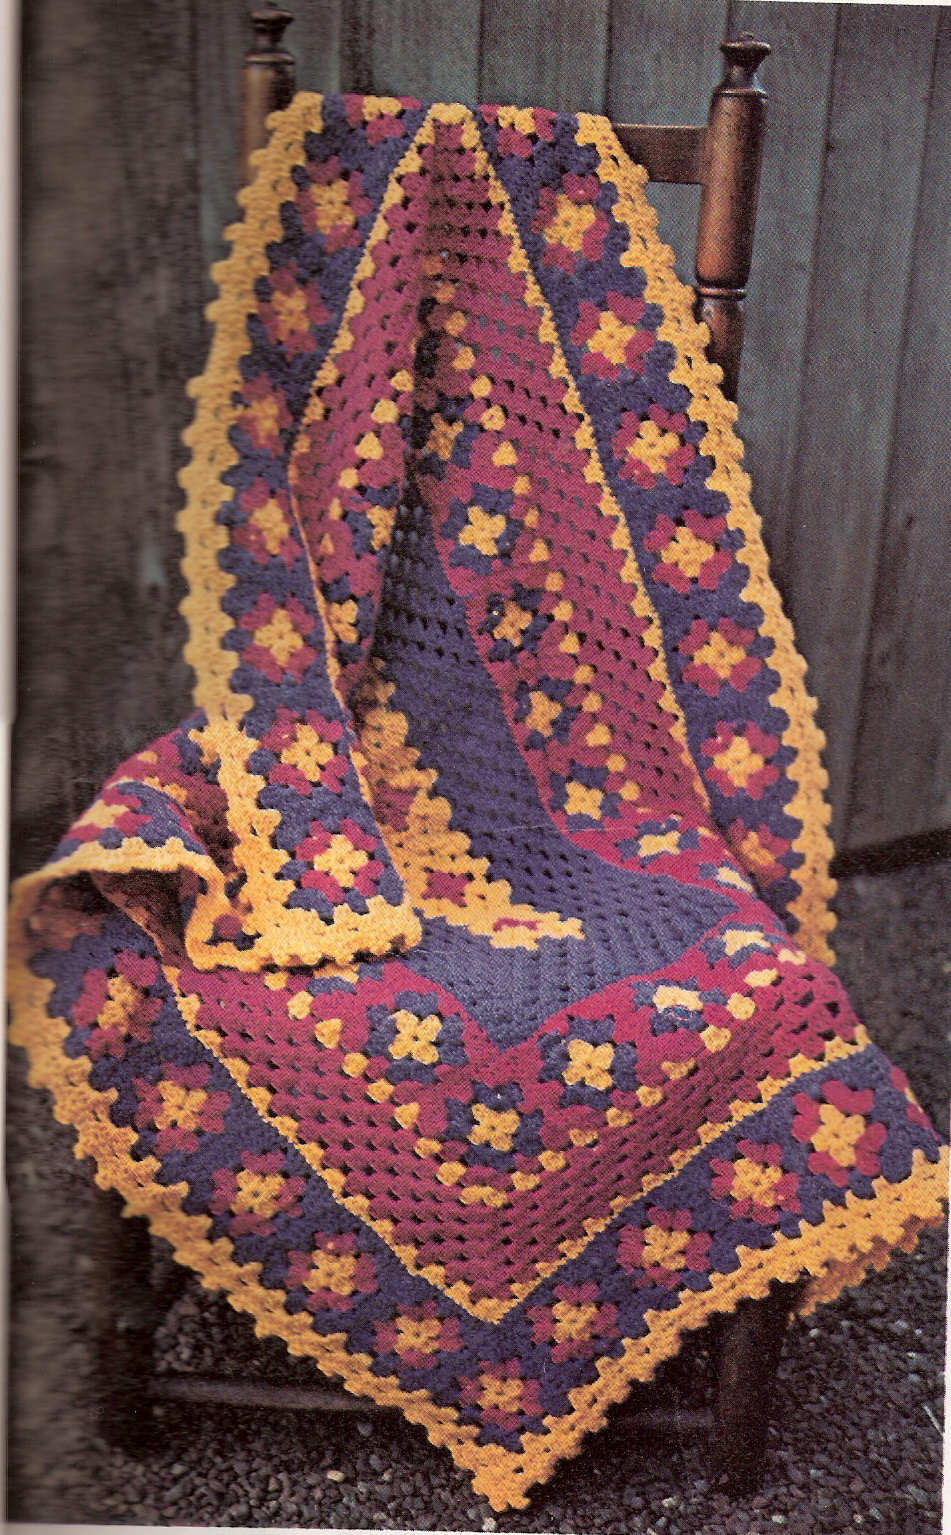 Free Crochet Throw Patterns Lovely Crochet Diamond Square Afghan Pattern – Crochet Patterns Of Contemporary 44 Pics Free Crochet Throw Patterns